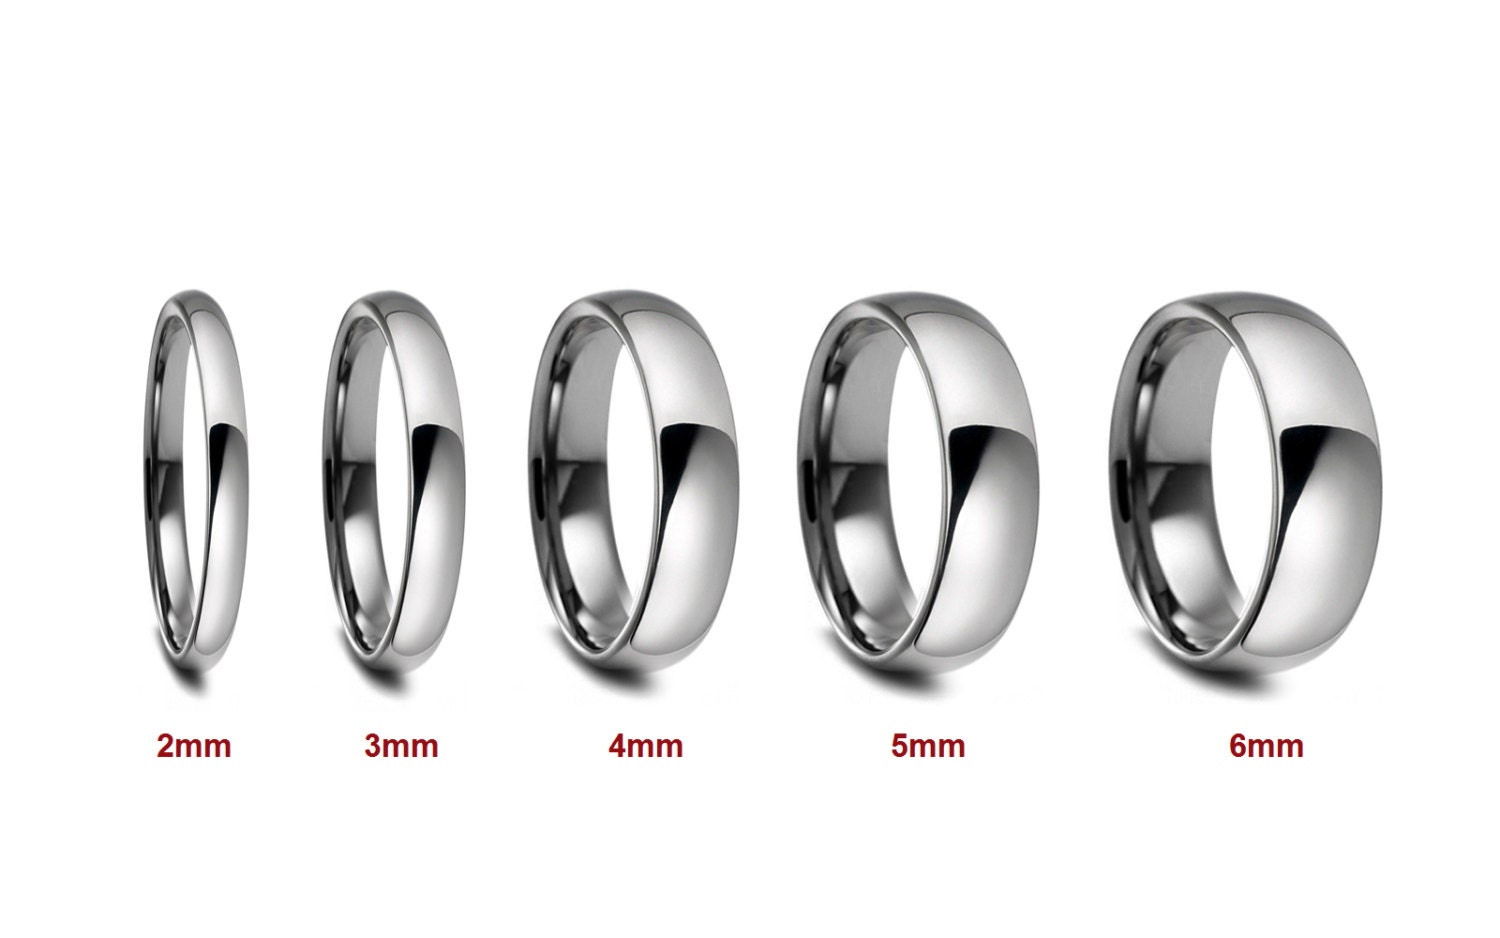 2mm 3mm 4mm 5mm 6mm width stainless steel wedding band